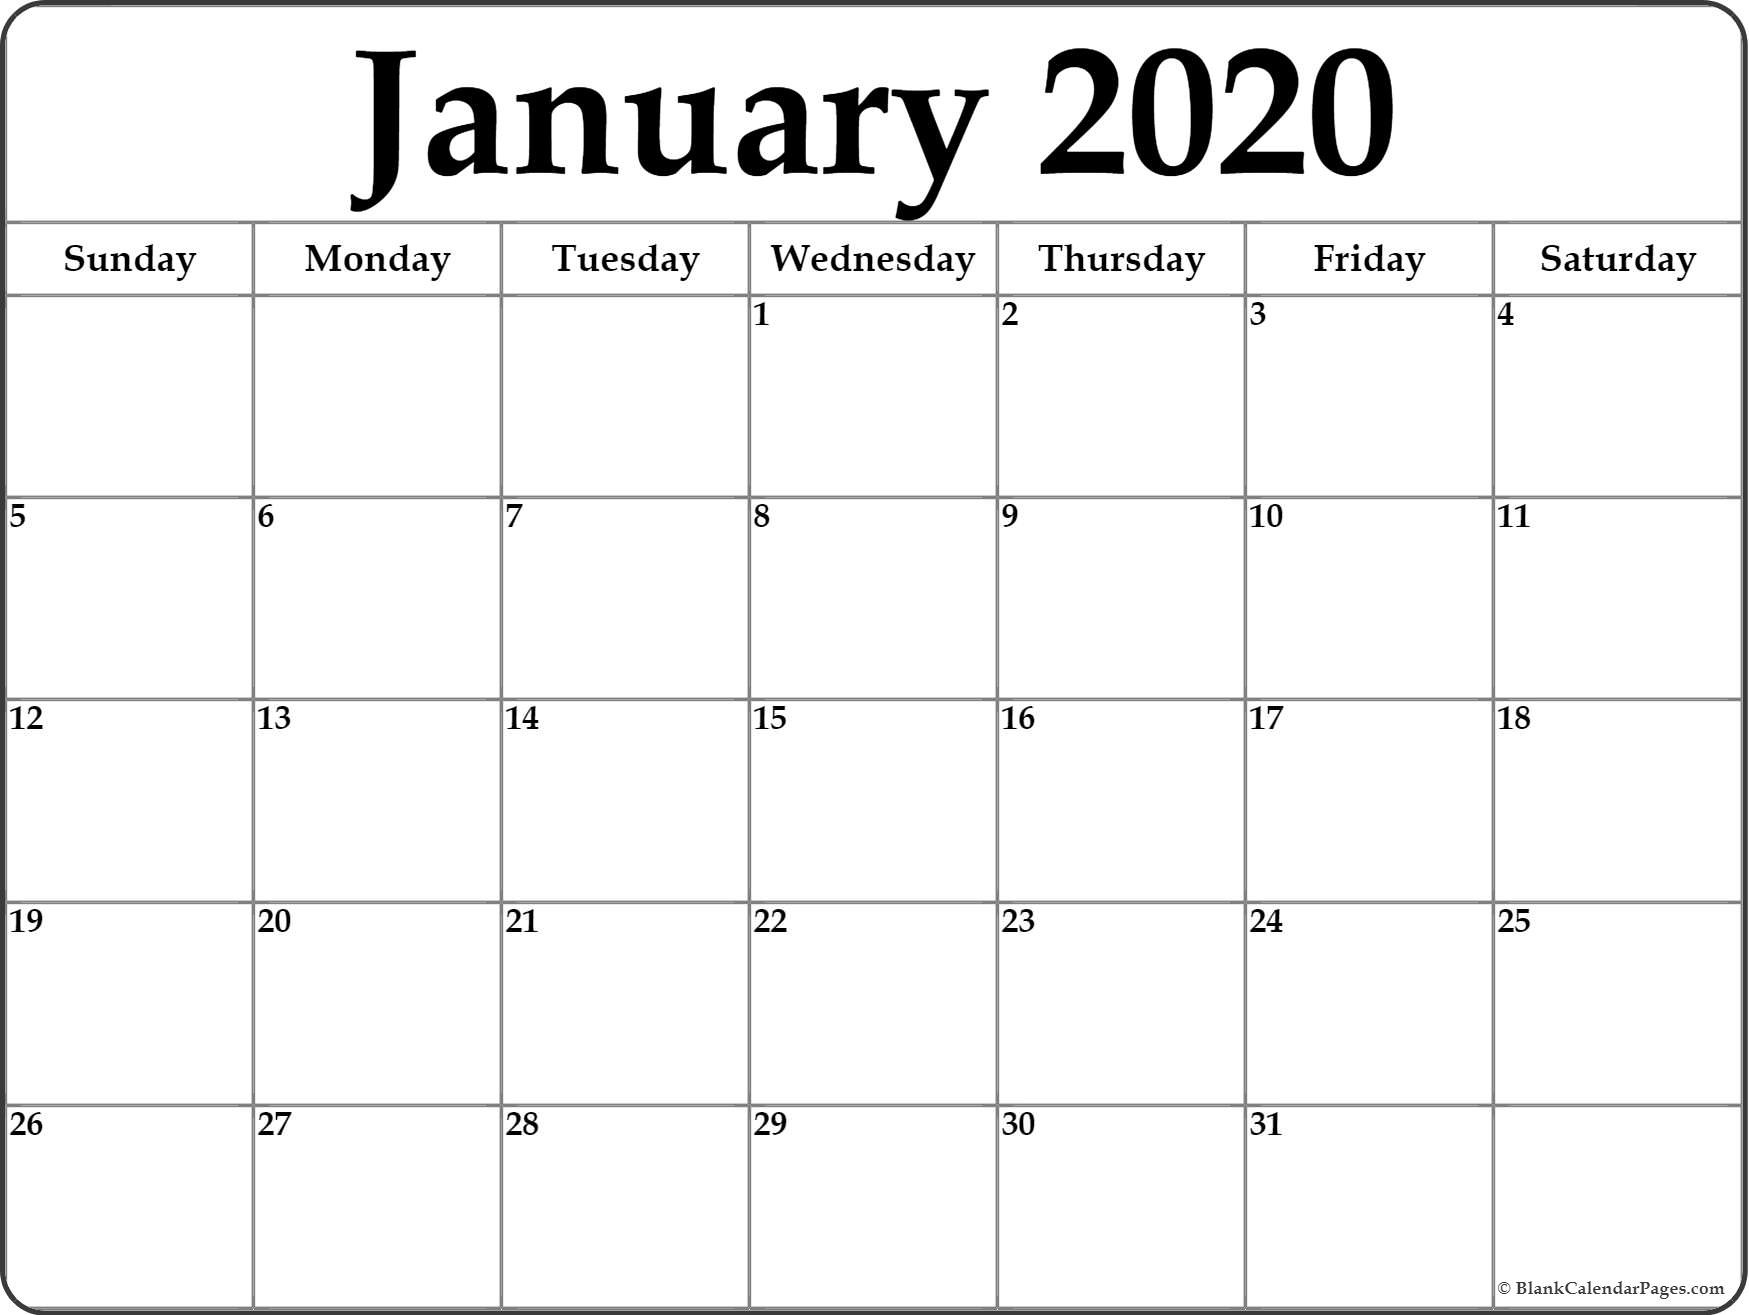 January 2020 Calendar | Free Printable Monthly Calendars-Printable Blank Calendar Pages Free 2020